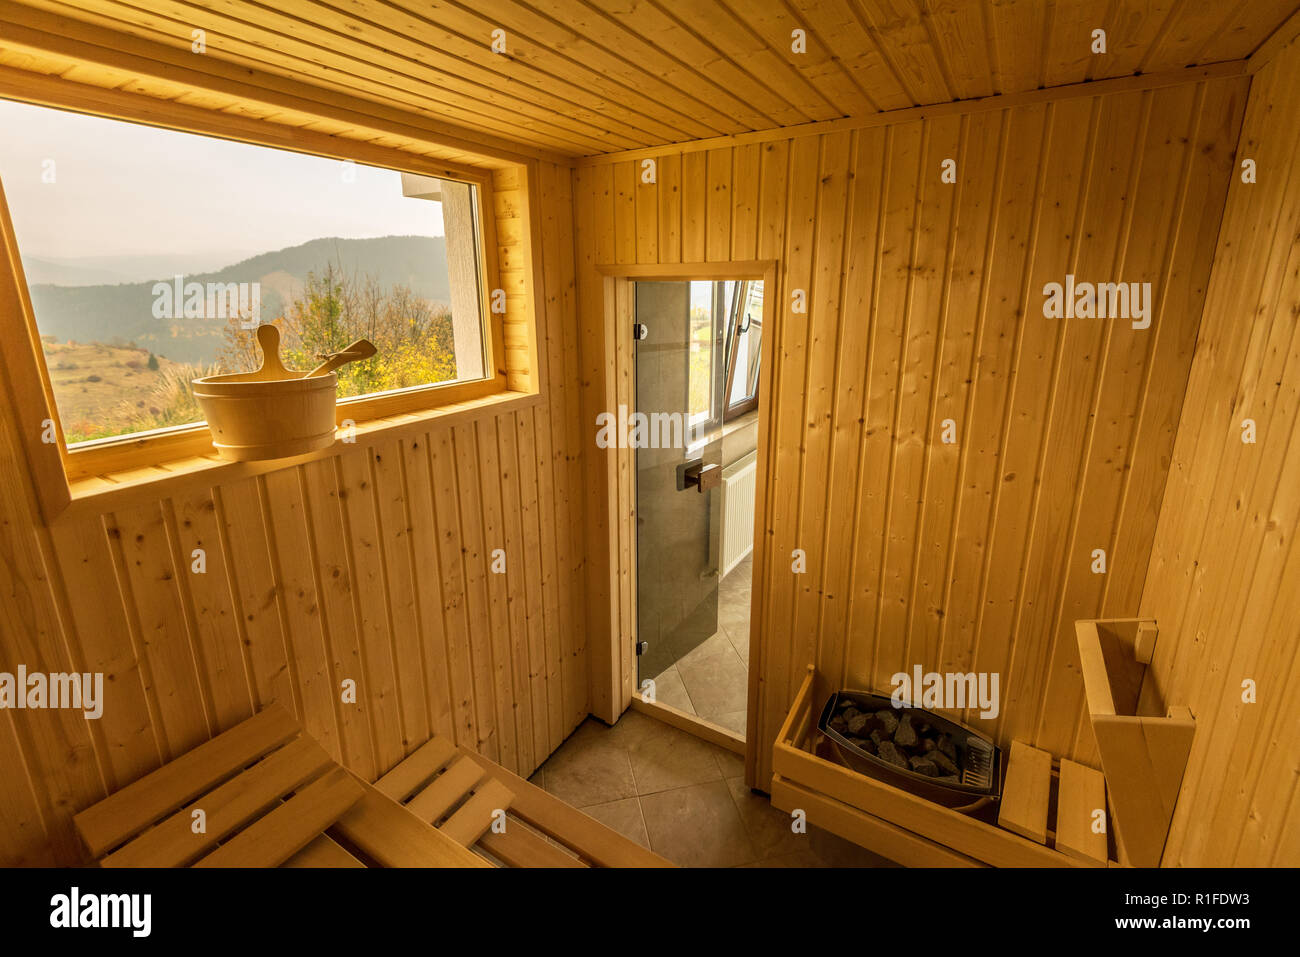 Wooden sauna with seats. Accessories interior of sauna spa. - Stock Image